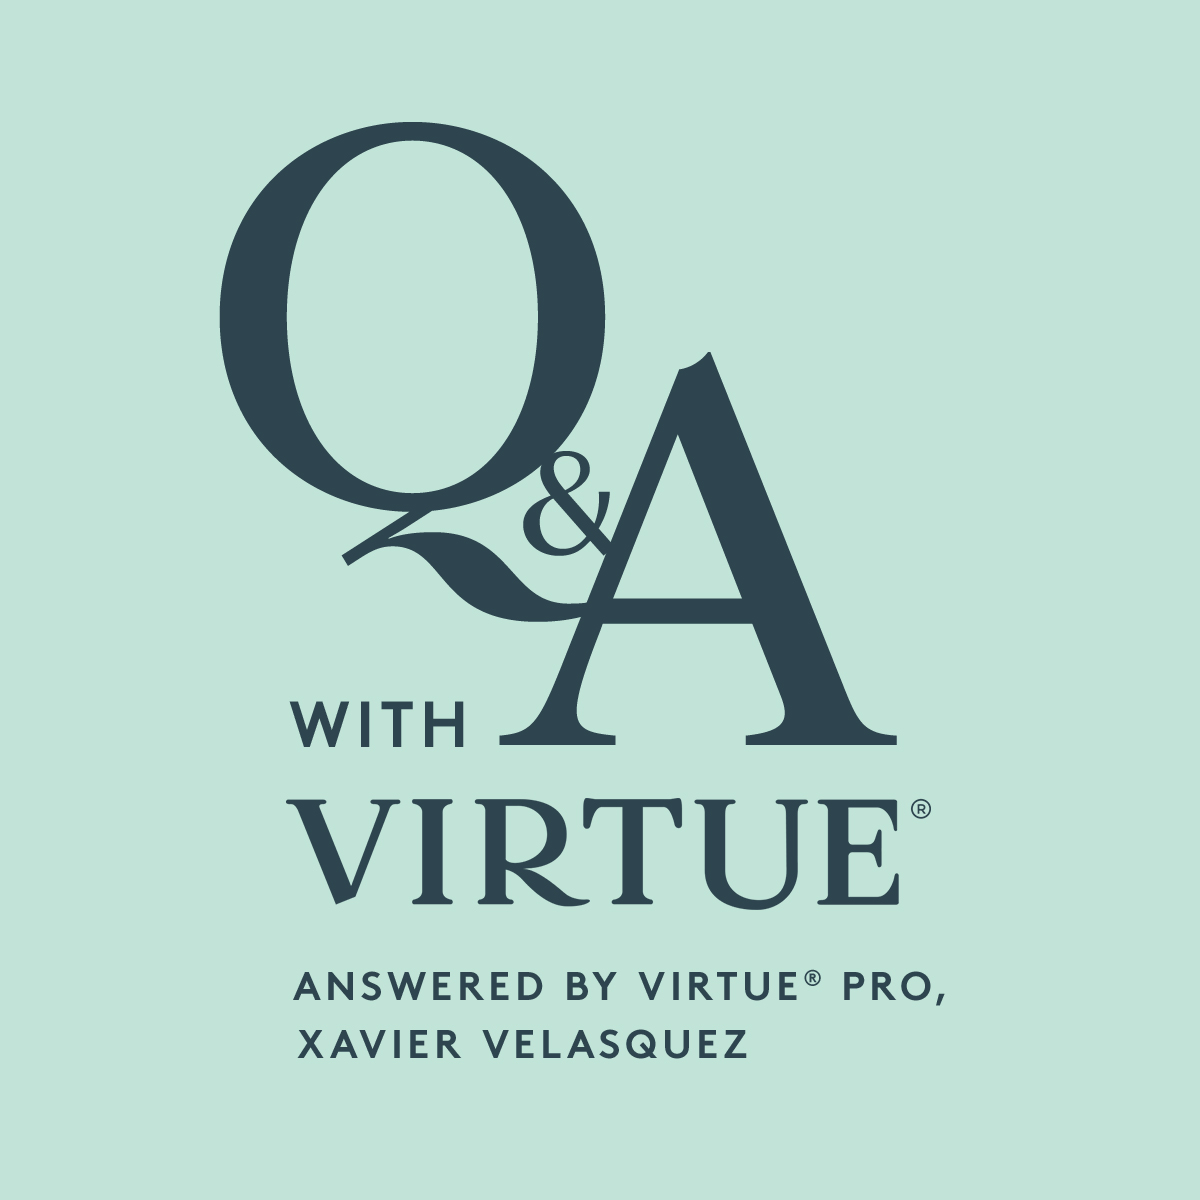 Q&A with Virtue